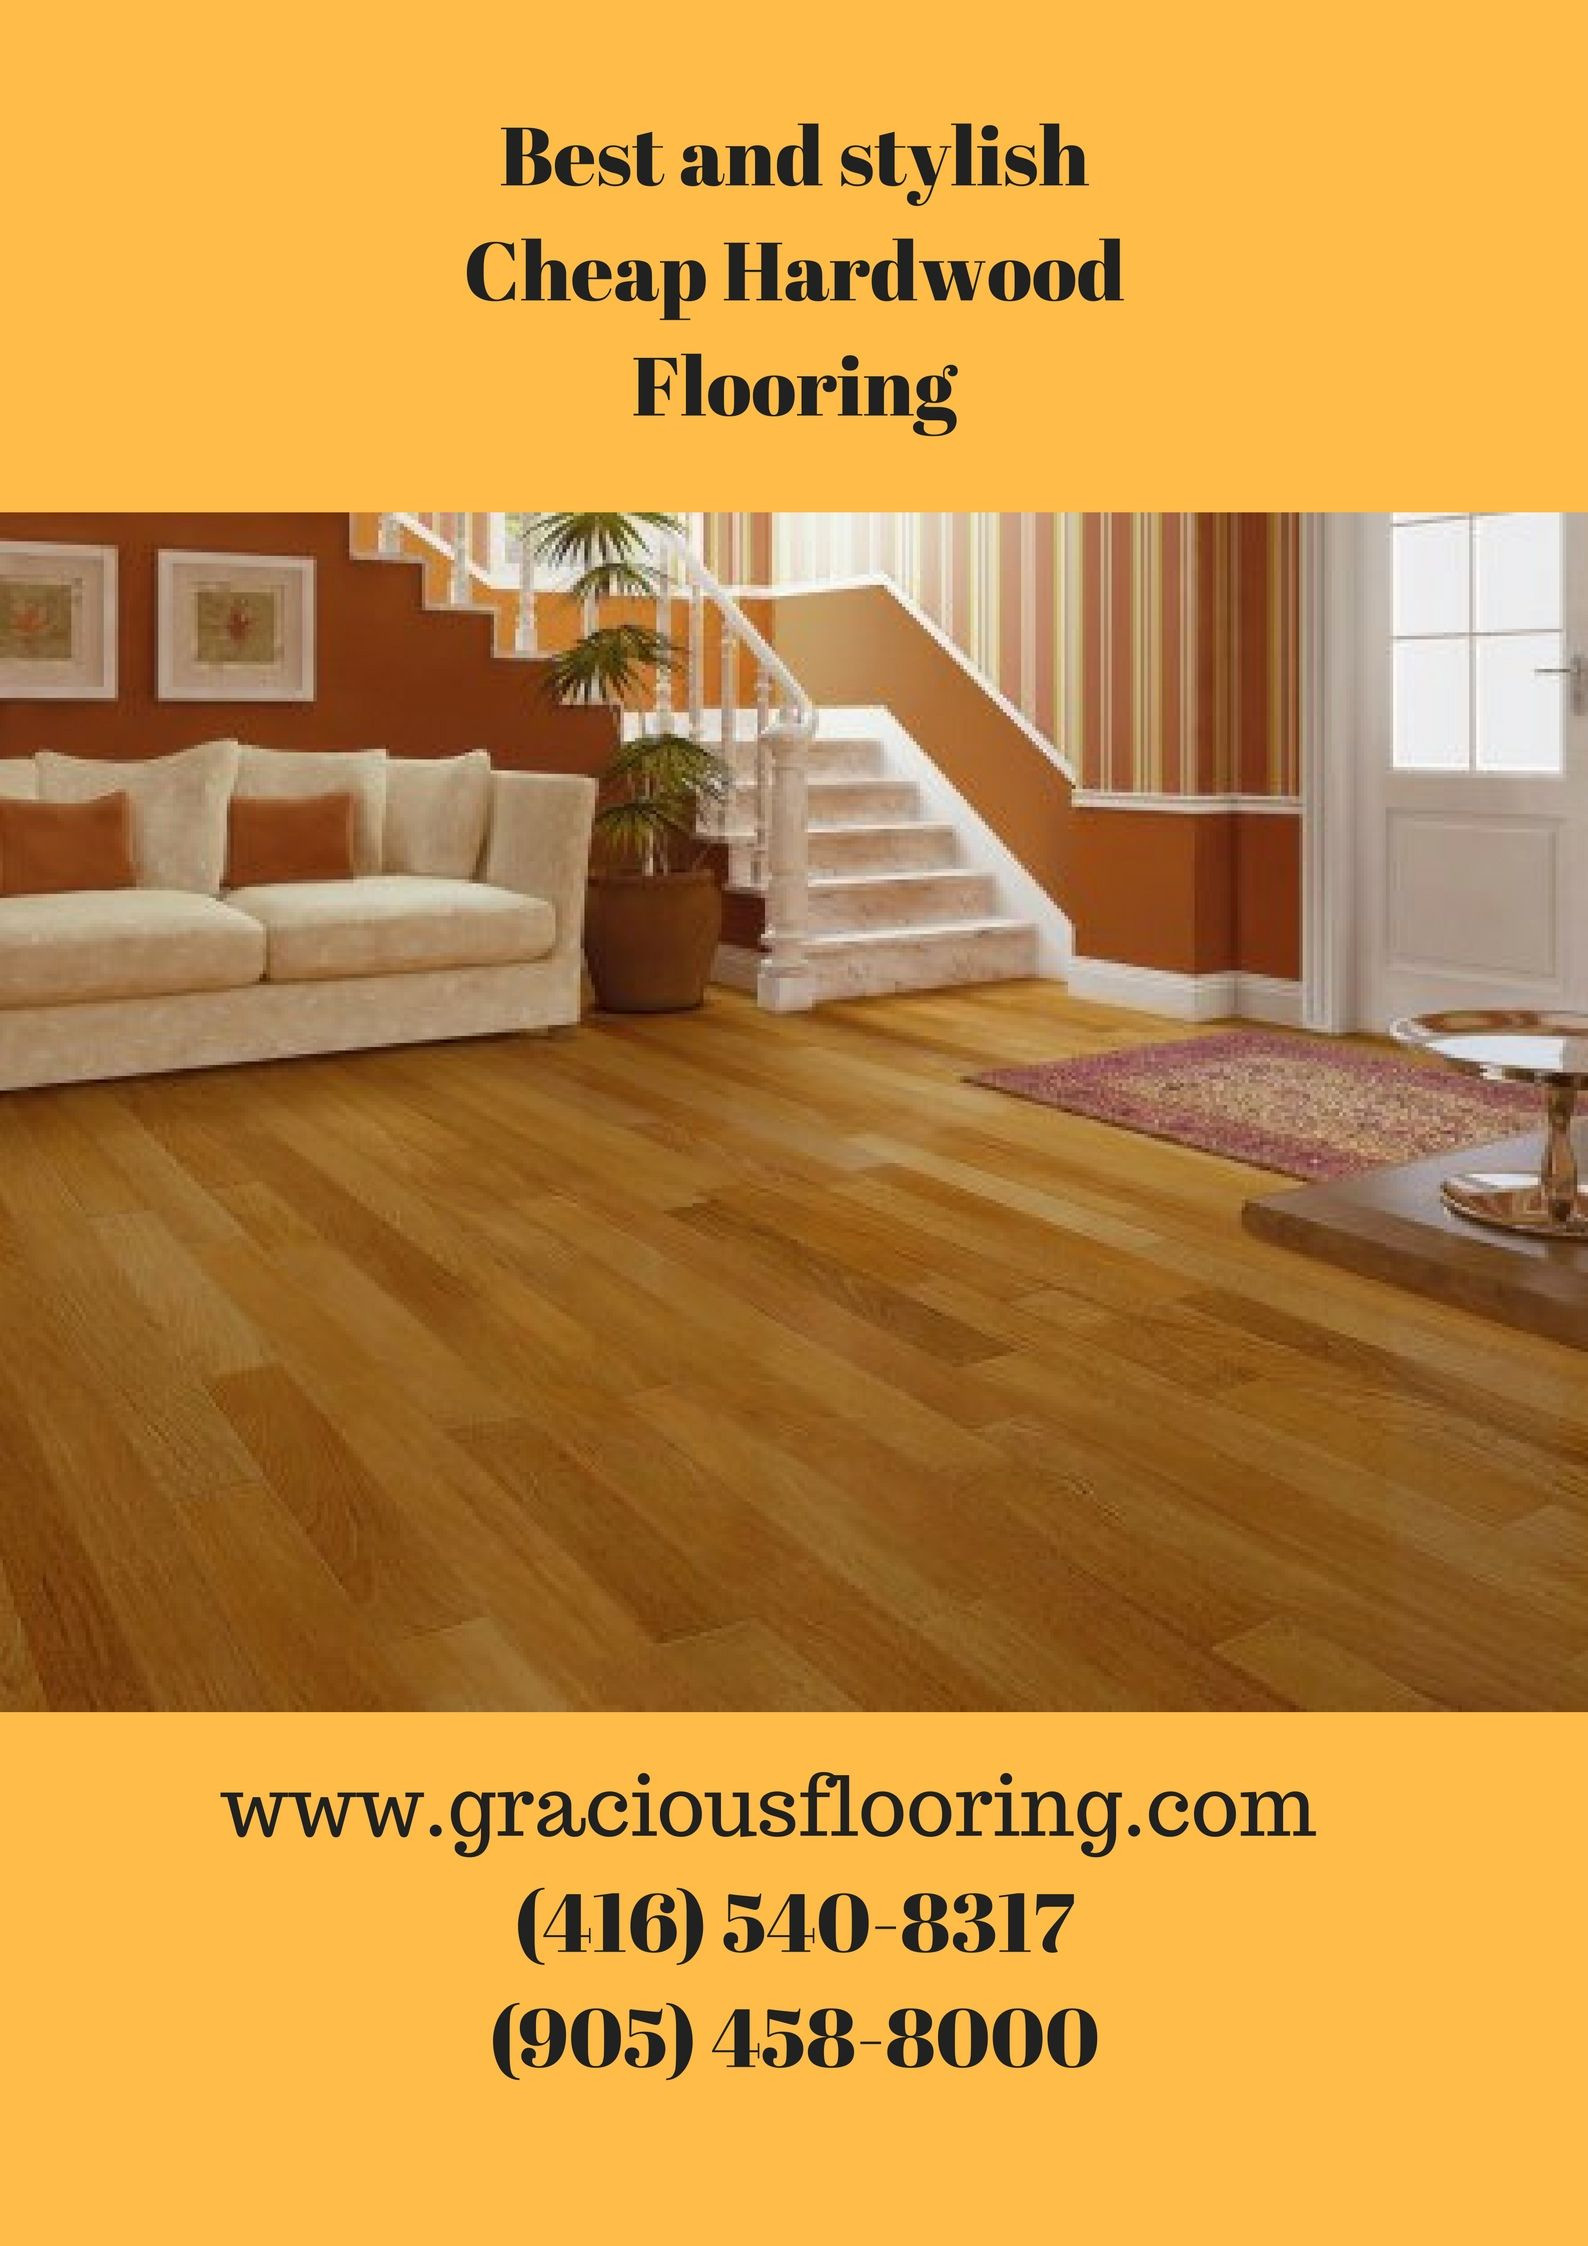 hardwood flooring toronto on of for cheap hardwood flooring at unbelievable rate contact within brampton hardwood flooring store brampton toronto mississauga